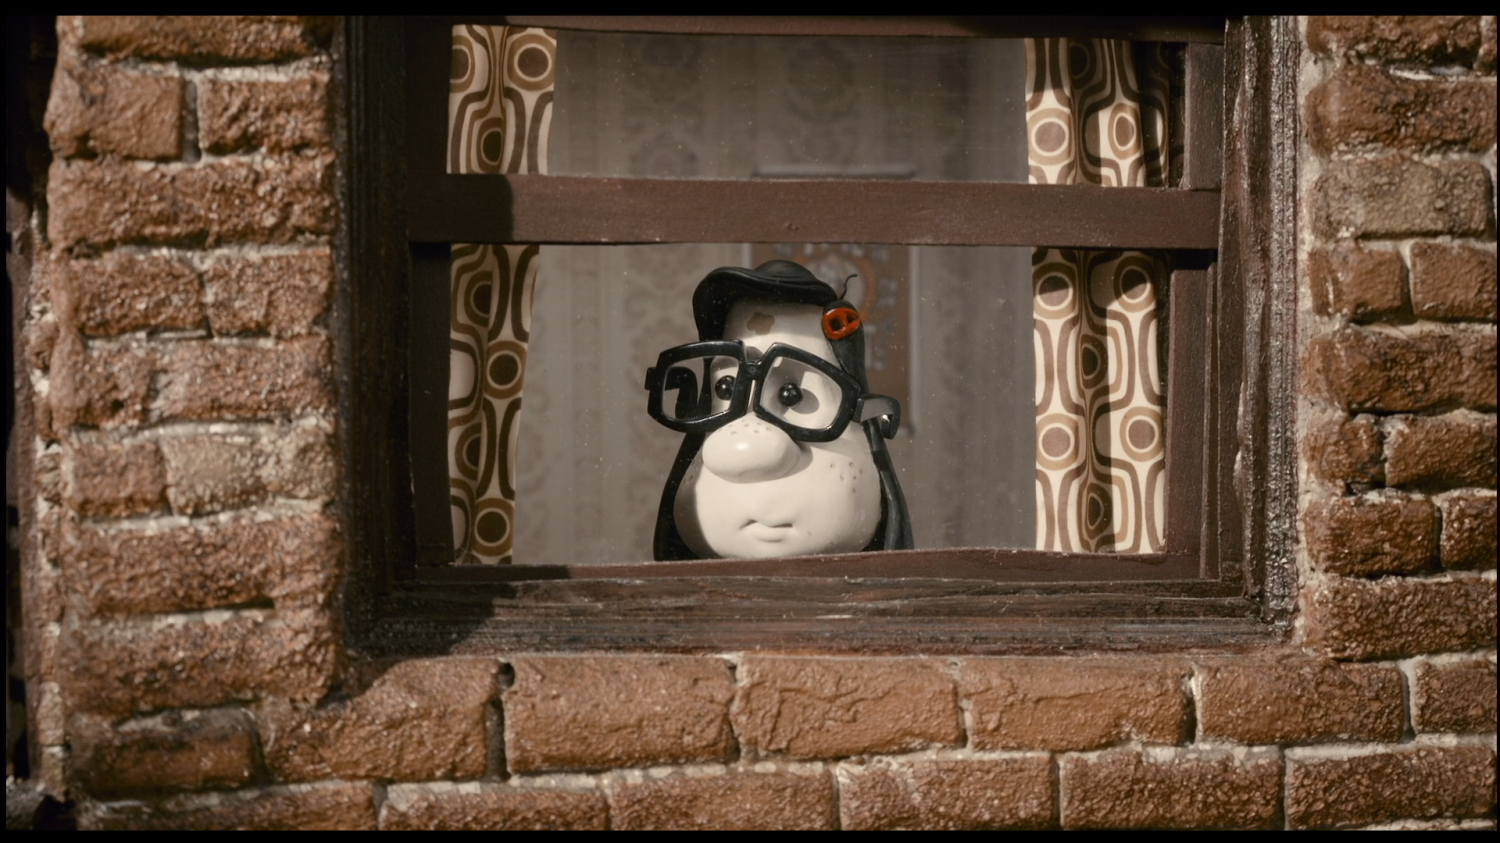 10 - Mary and Max